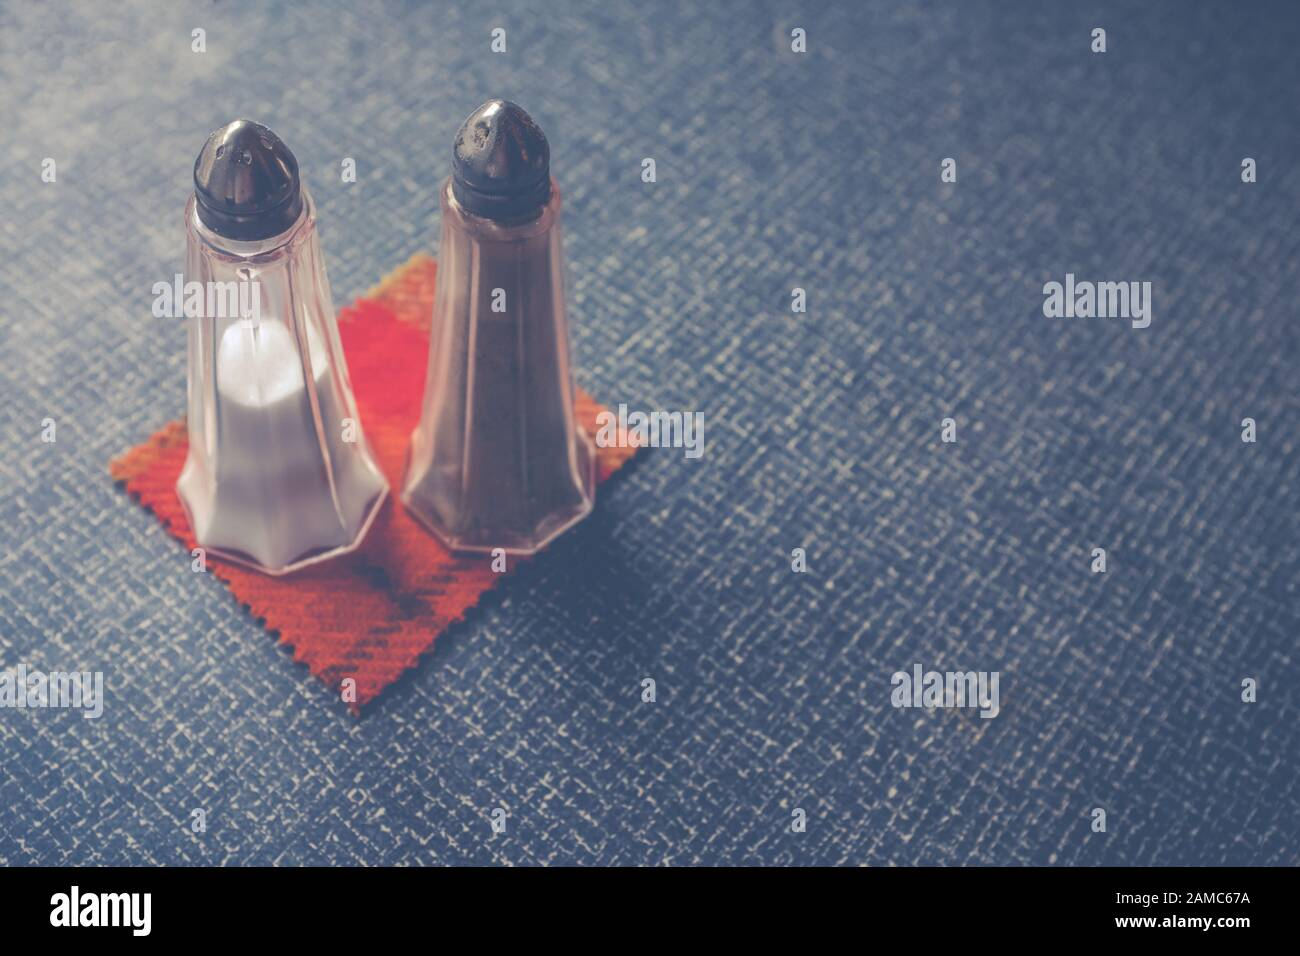 Salt And Pepper Shakers On A Retro Plastic Diner Table With Copy Space Stock Photo